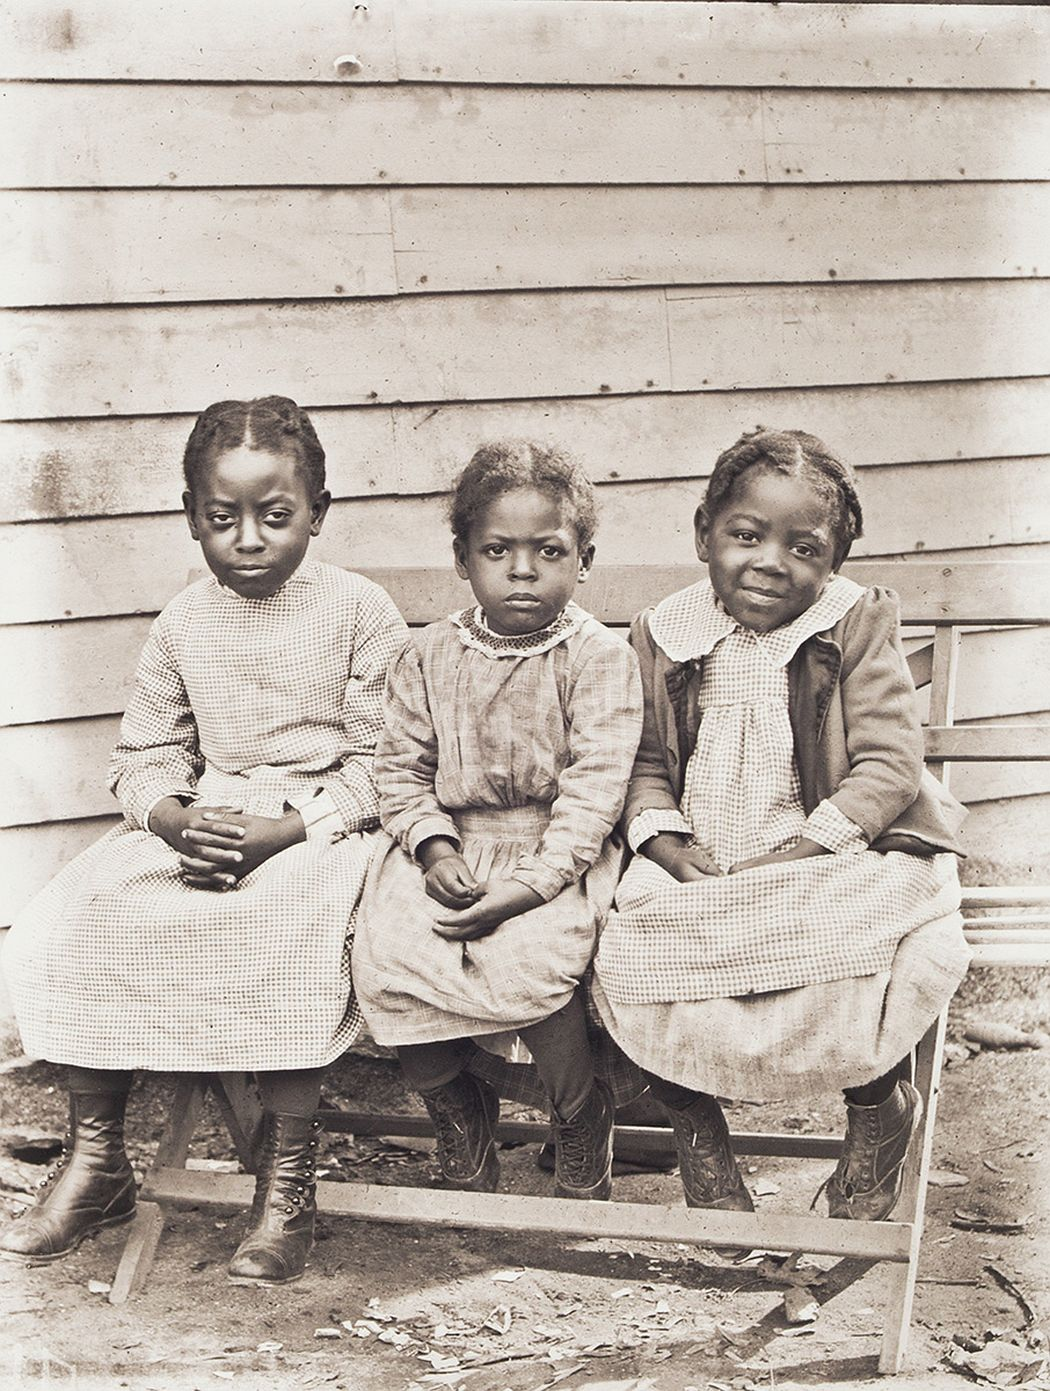 Portrait of Lillian, Cora and Luvenia Ward, about 1900, printed 2016, archival inkjet print, E.132.16.62 Lillian, Luvenia, and Cora Ward were the daughters of former slaves William H. and Arries Ann Ward, from eastern North Carolina. After defending his wife from an attempted rape by a white man, William fled north to Pomfret, Connecticut, where Arries Ann joined him in 1889. They subsequently moved to Worcester and parented eleven children.